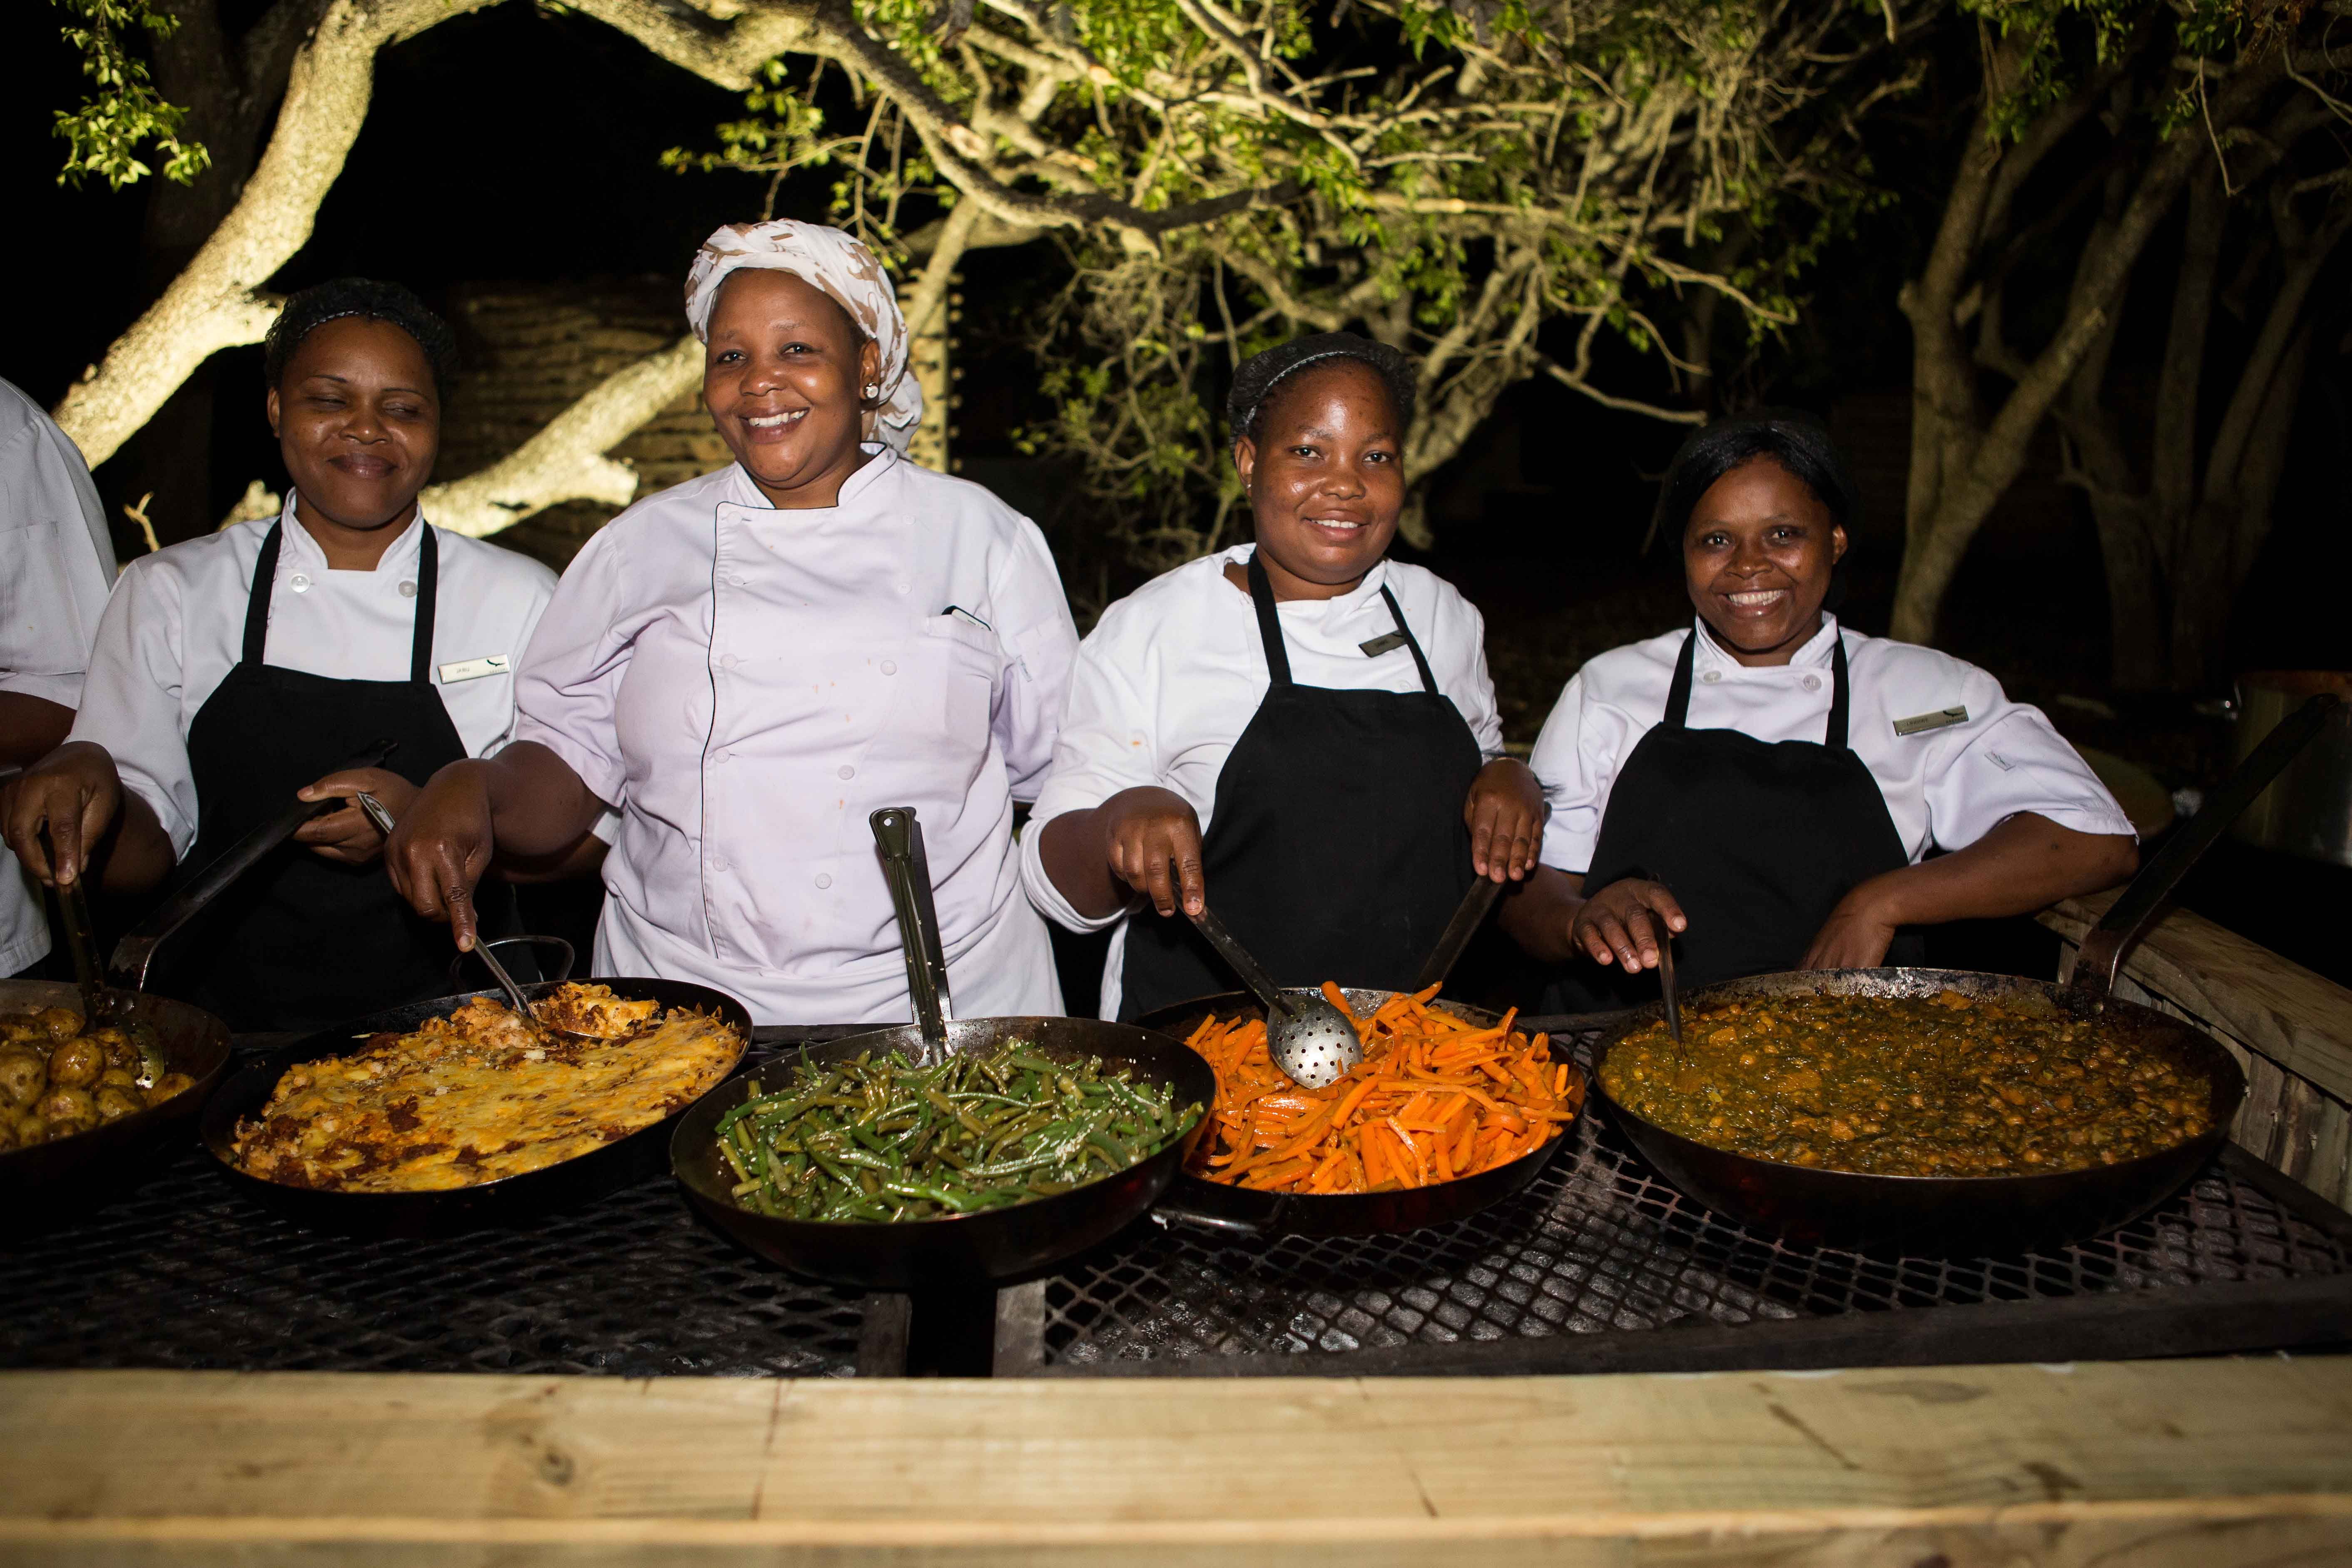 Food at outdoor wedding reception in South Africa